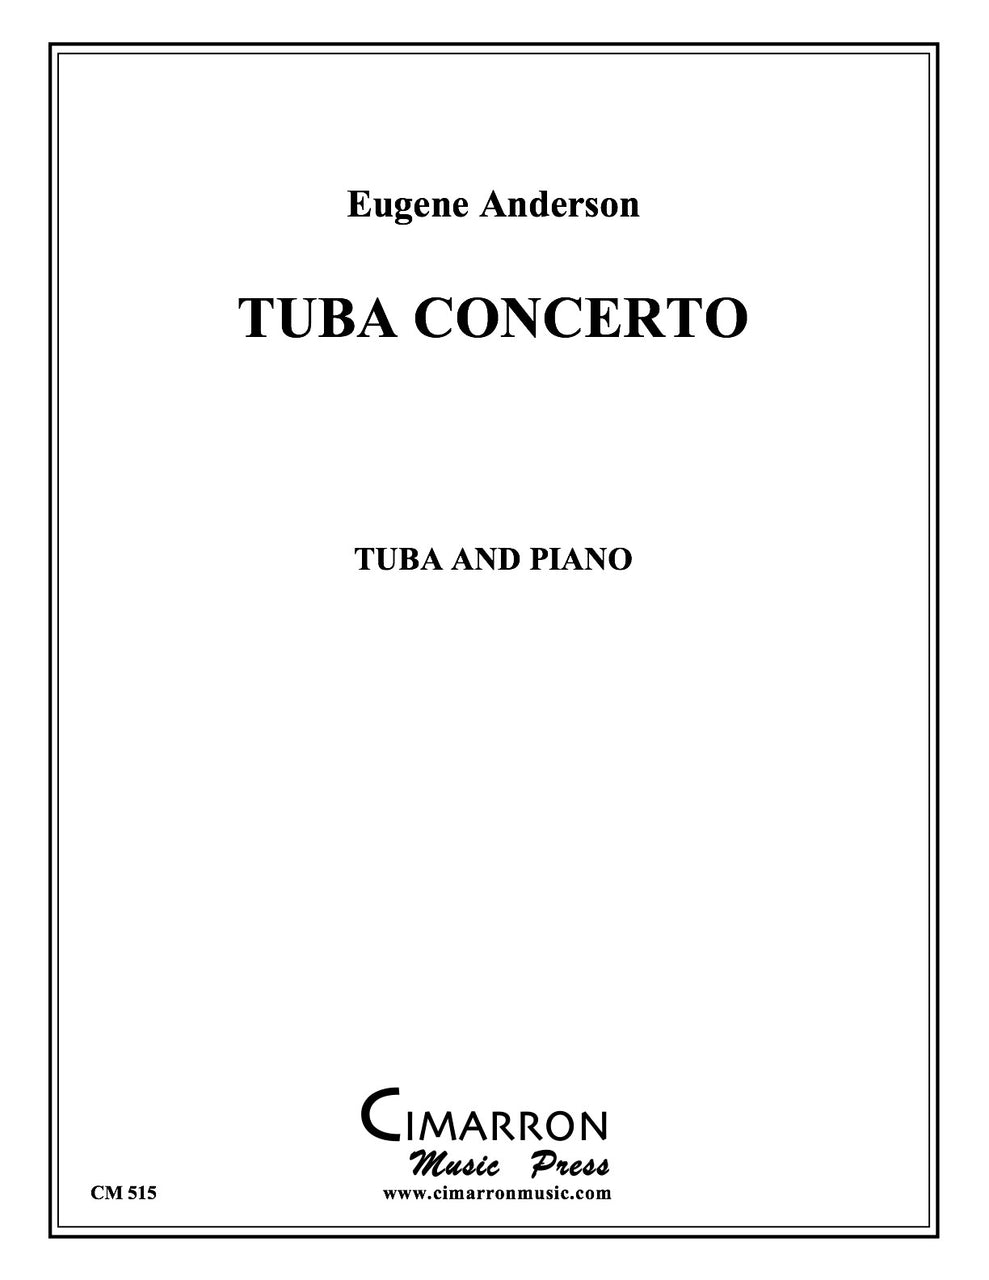 Anderson, Eugene - Tuba Concerto No. 1 in B Minor - Tuba and Piano